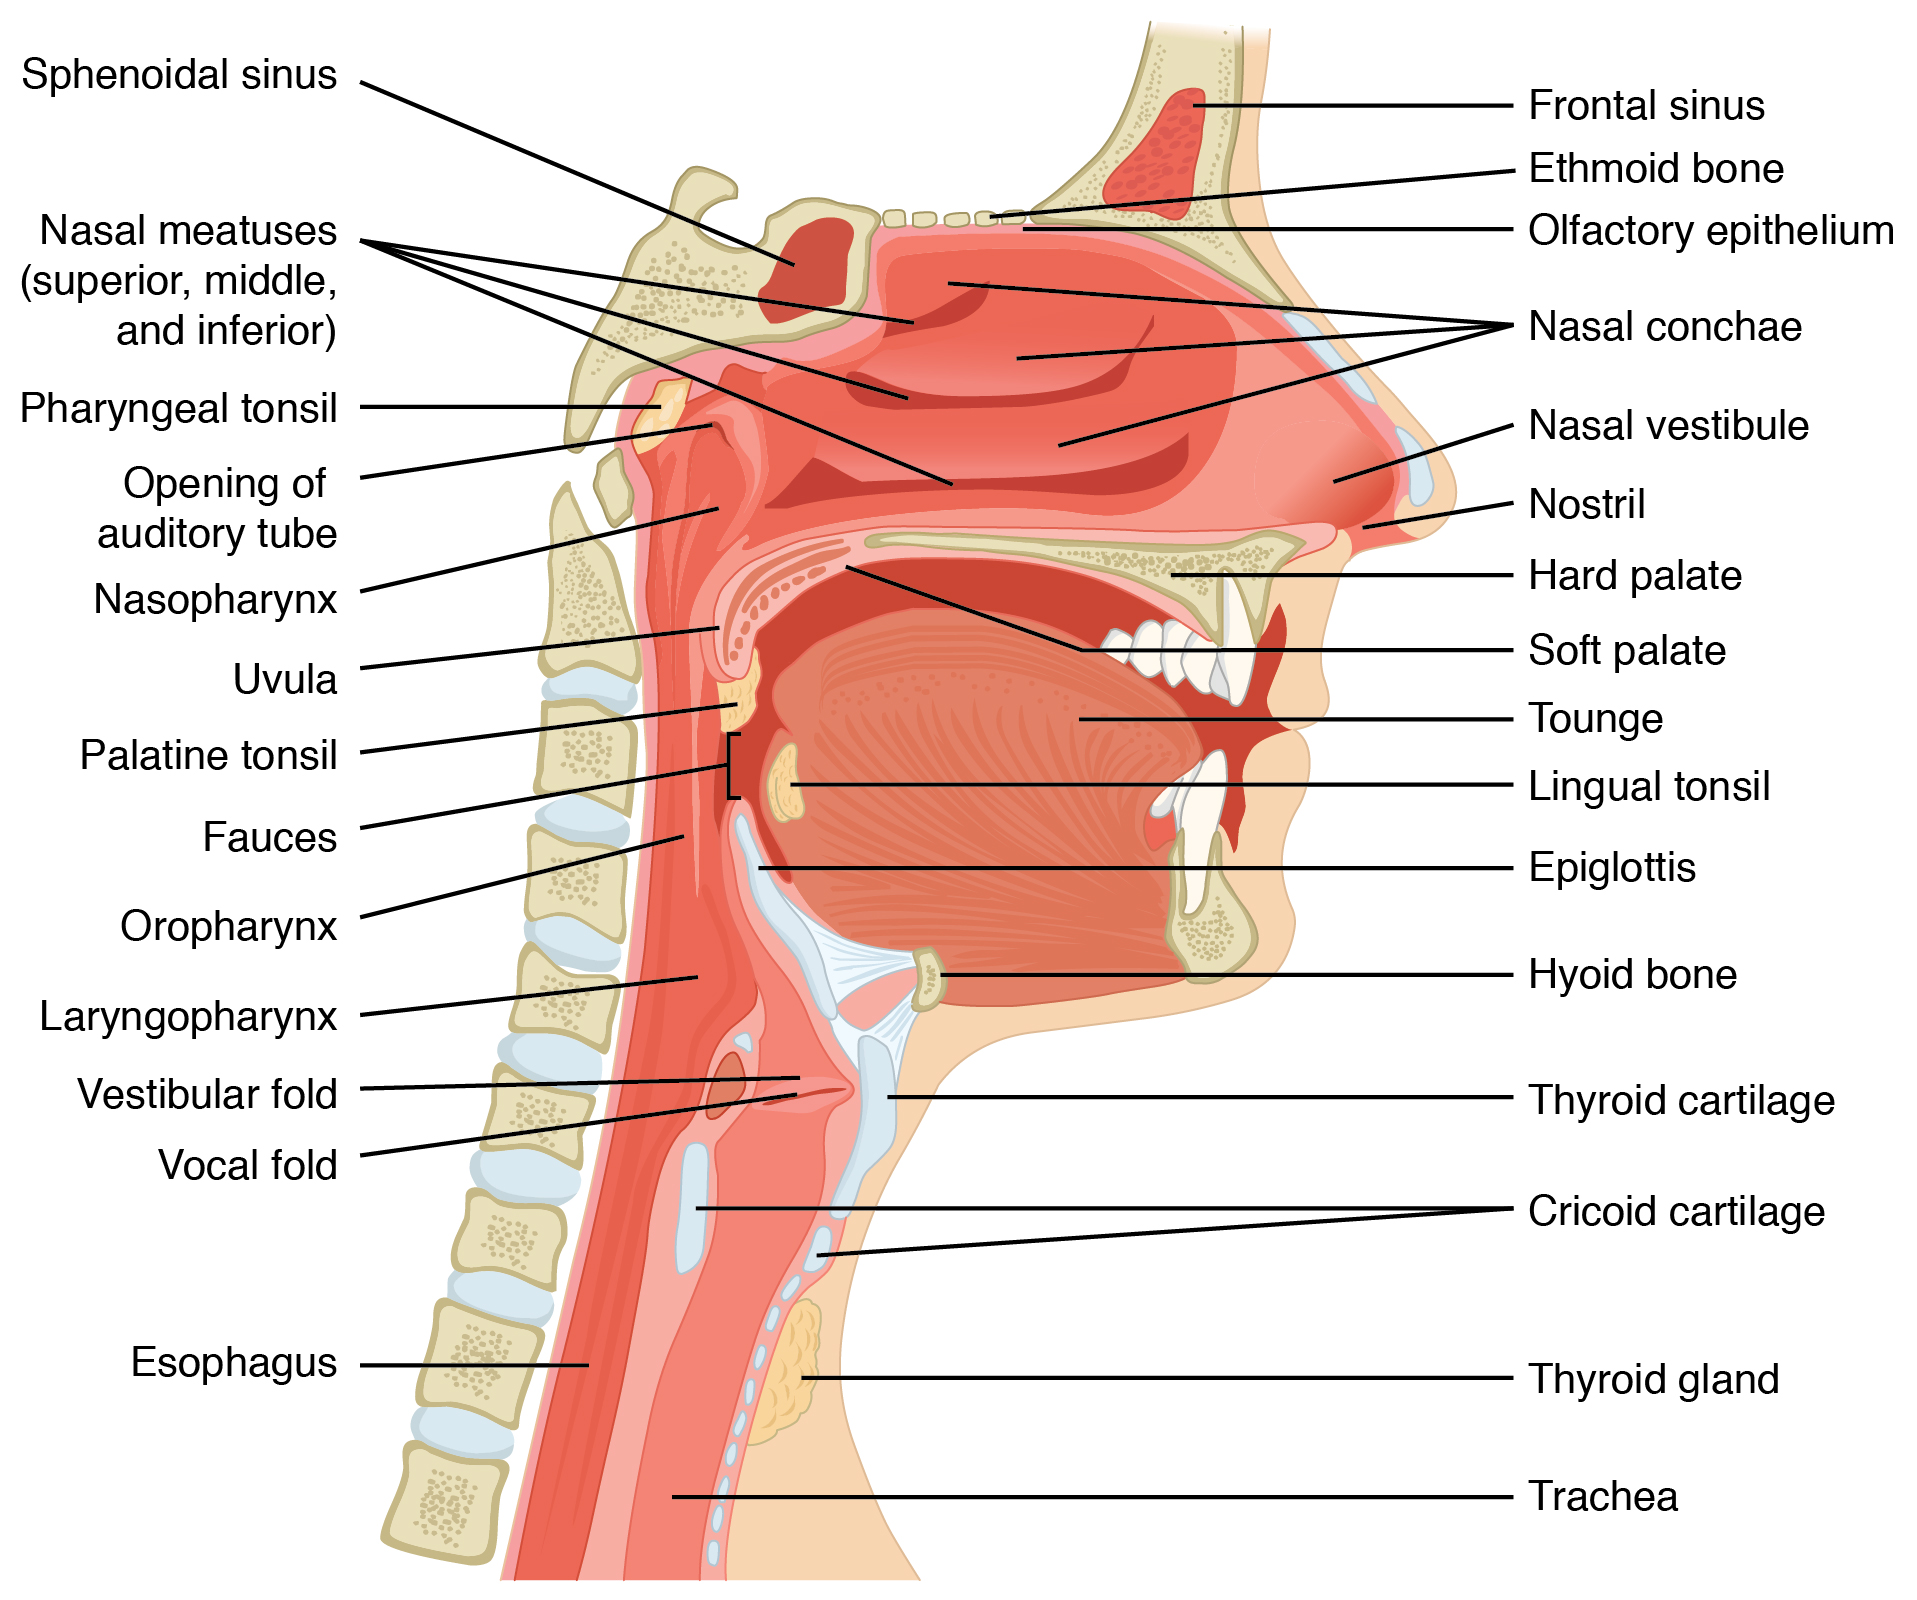 diagram of pharynx - box wiring diagram